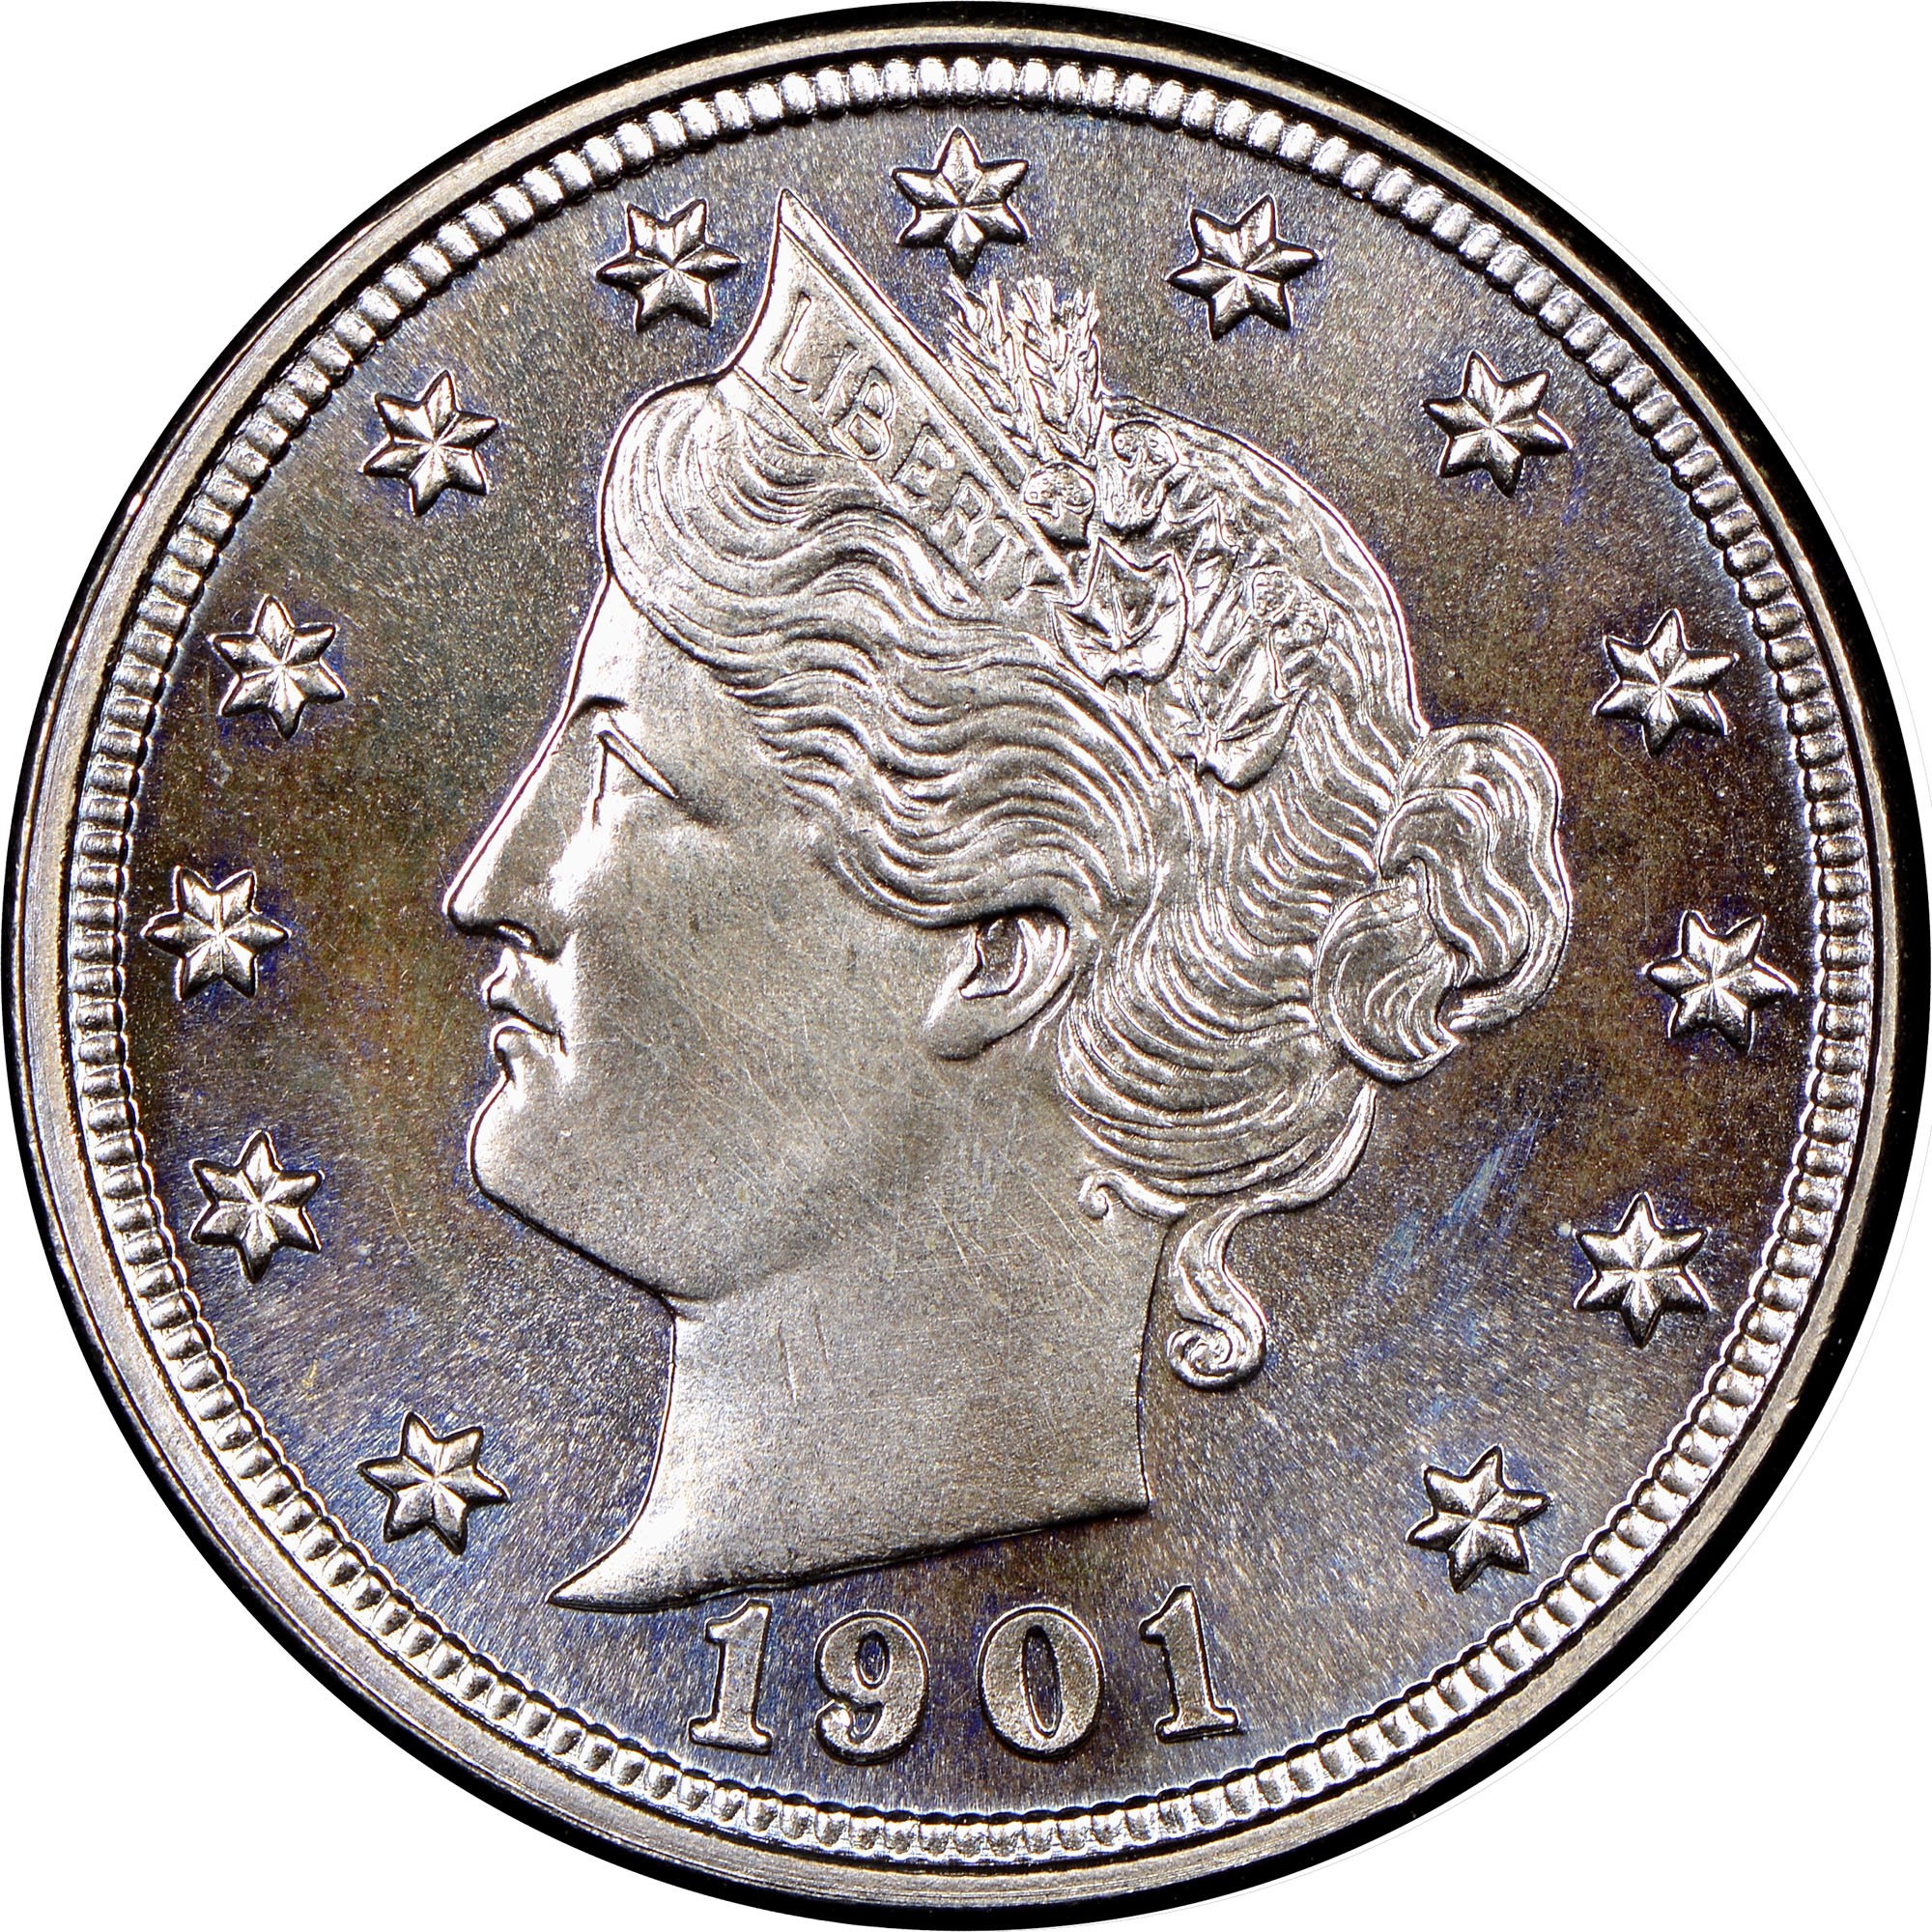 1901 5 cent coin